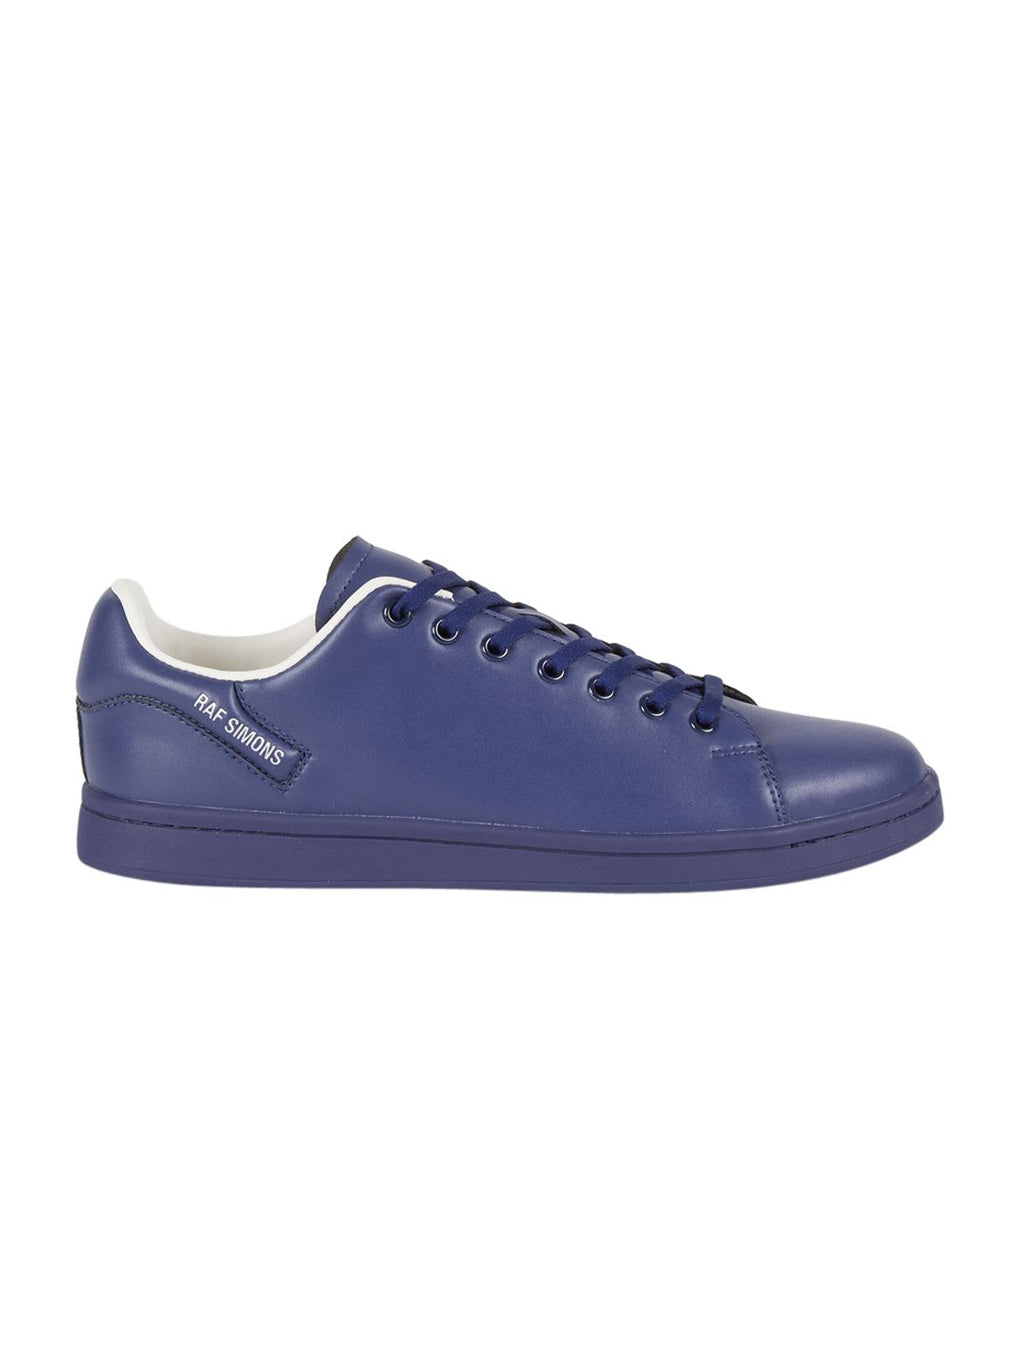 Navy Orion Sneakers